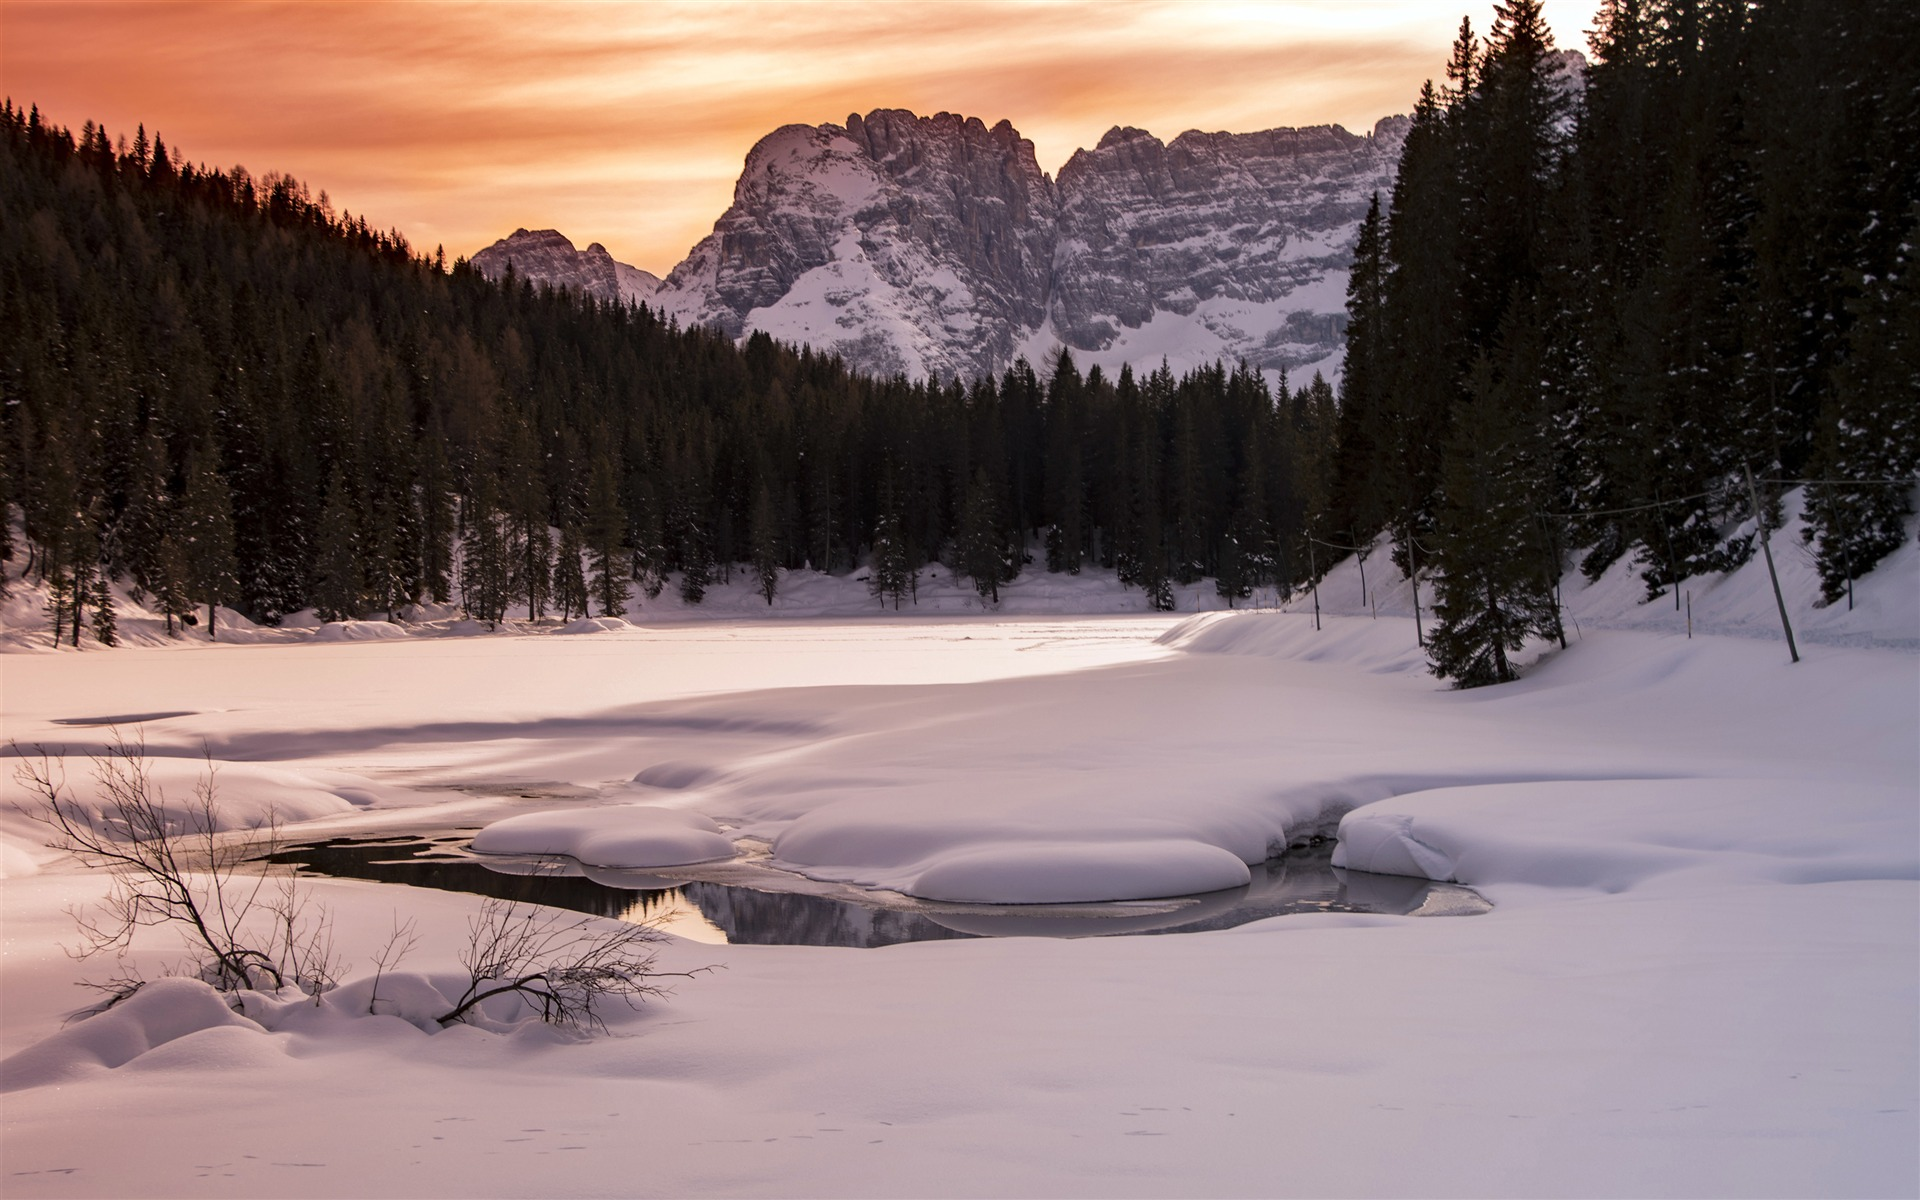 Winter jungle Alpine ice snow sunset - 1920x1200 wallpaper download